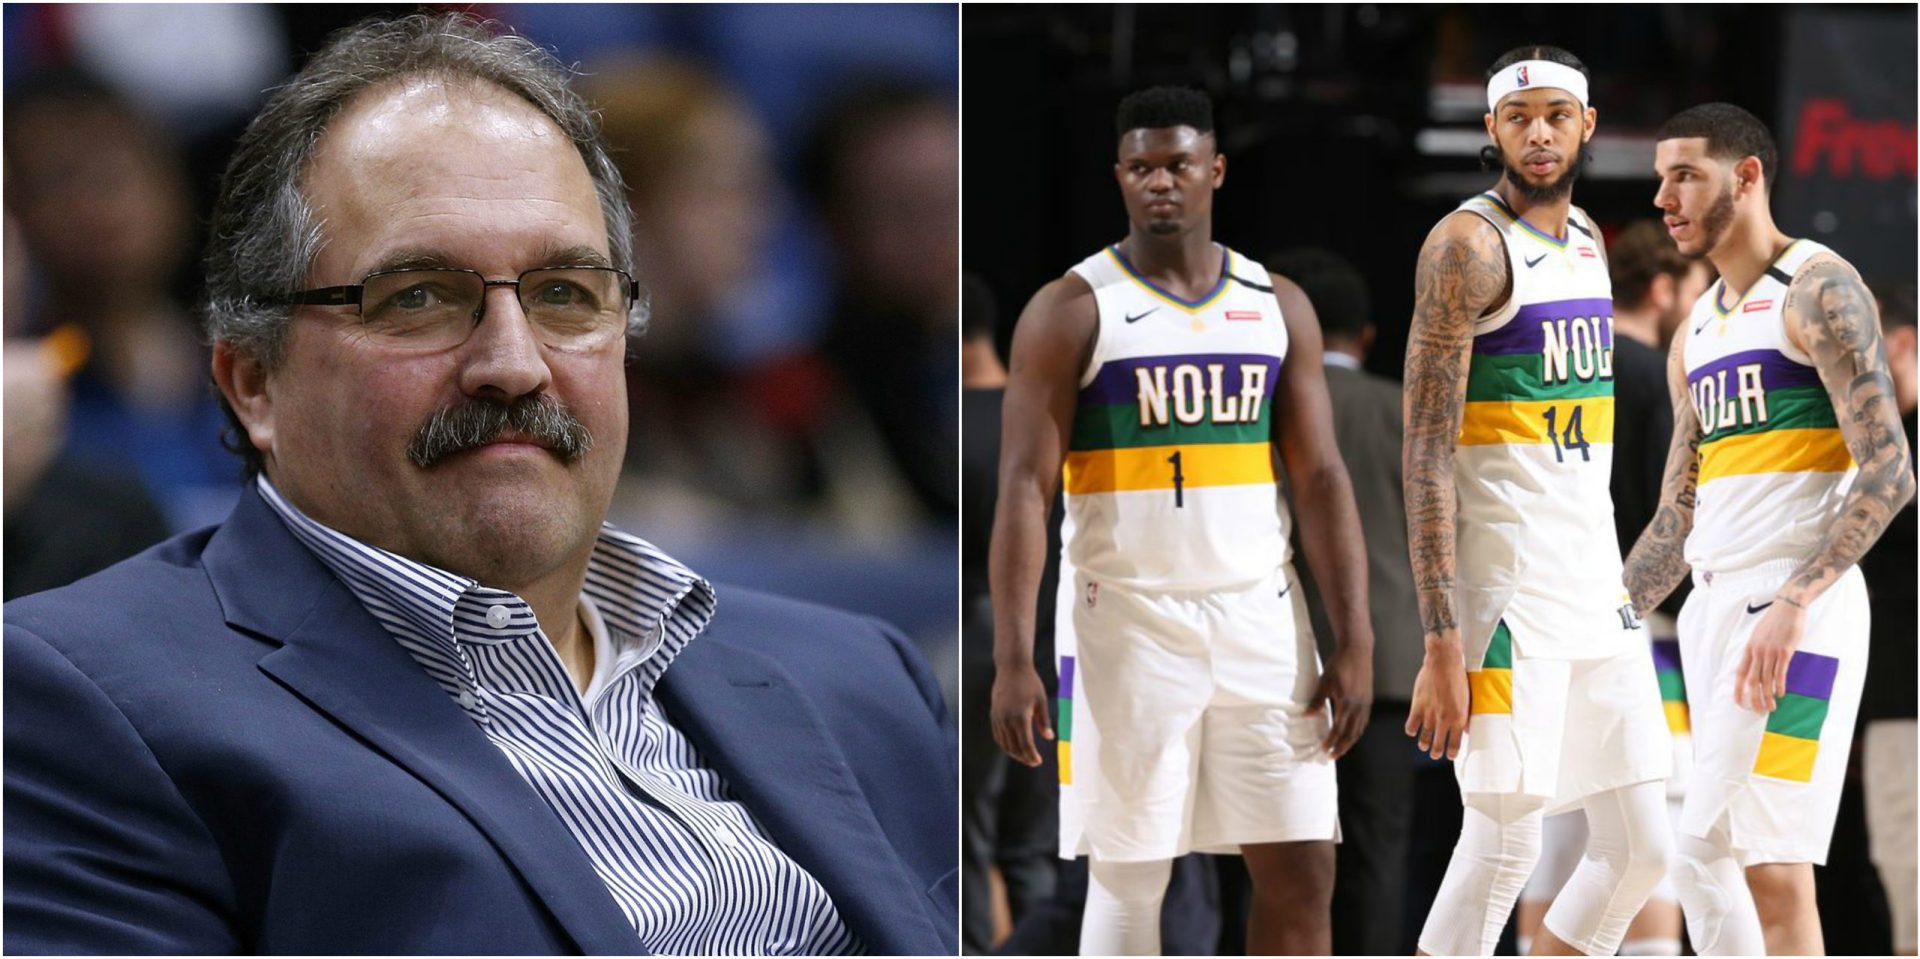 Stan Van Gundy joins as Pelicans head coach after a 2-year hiatus - THE SPORTS ROOM